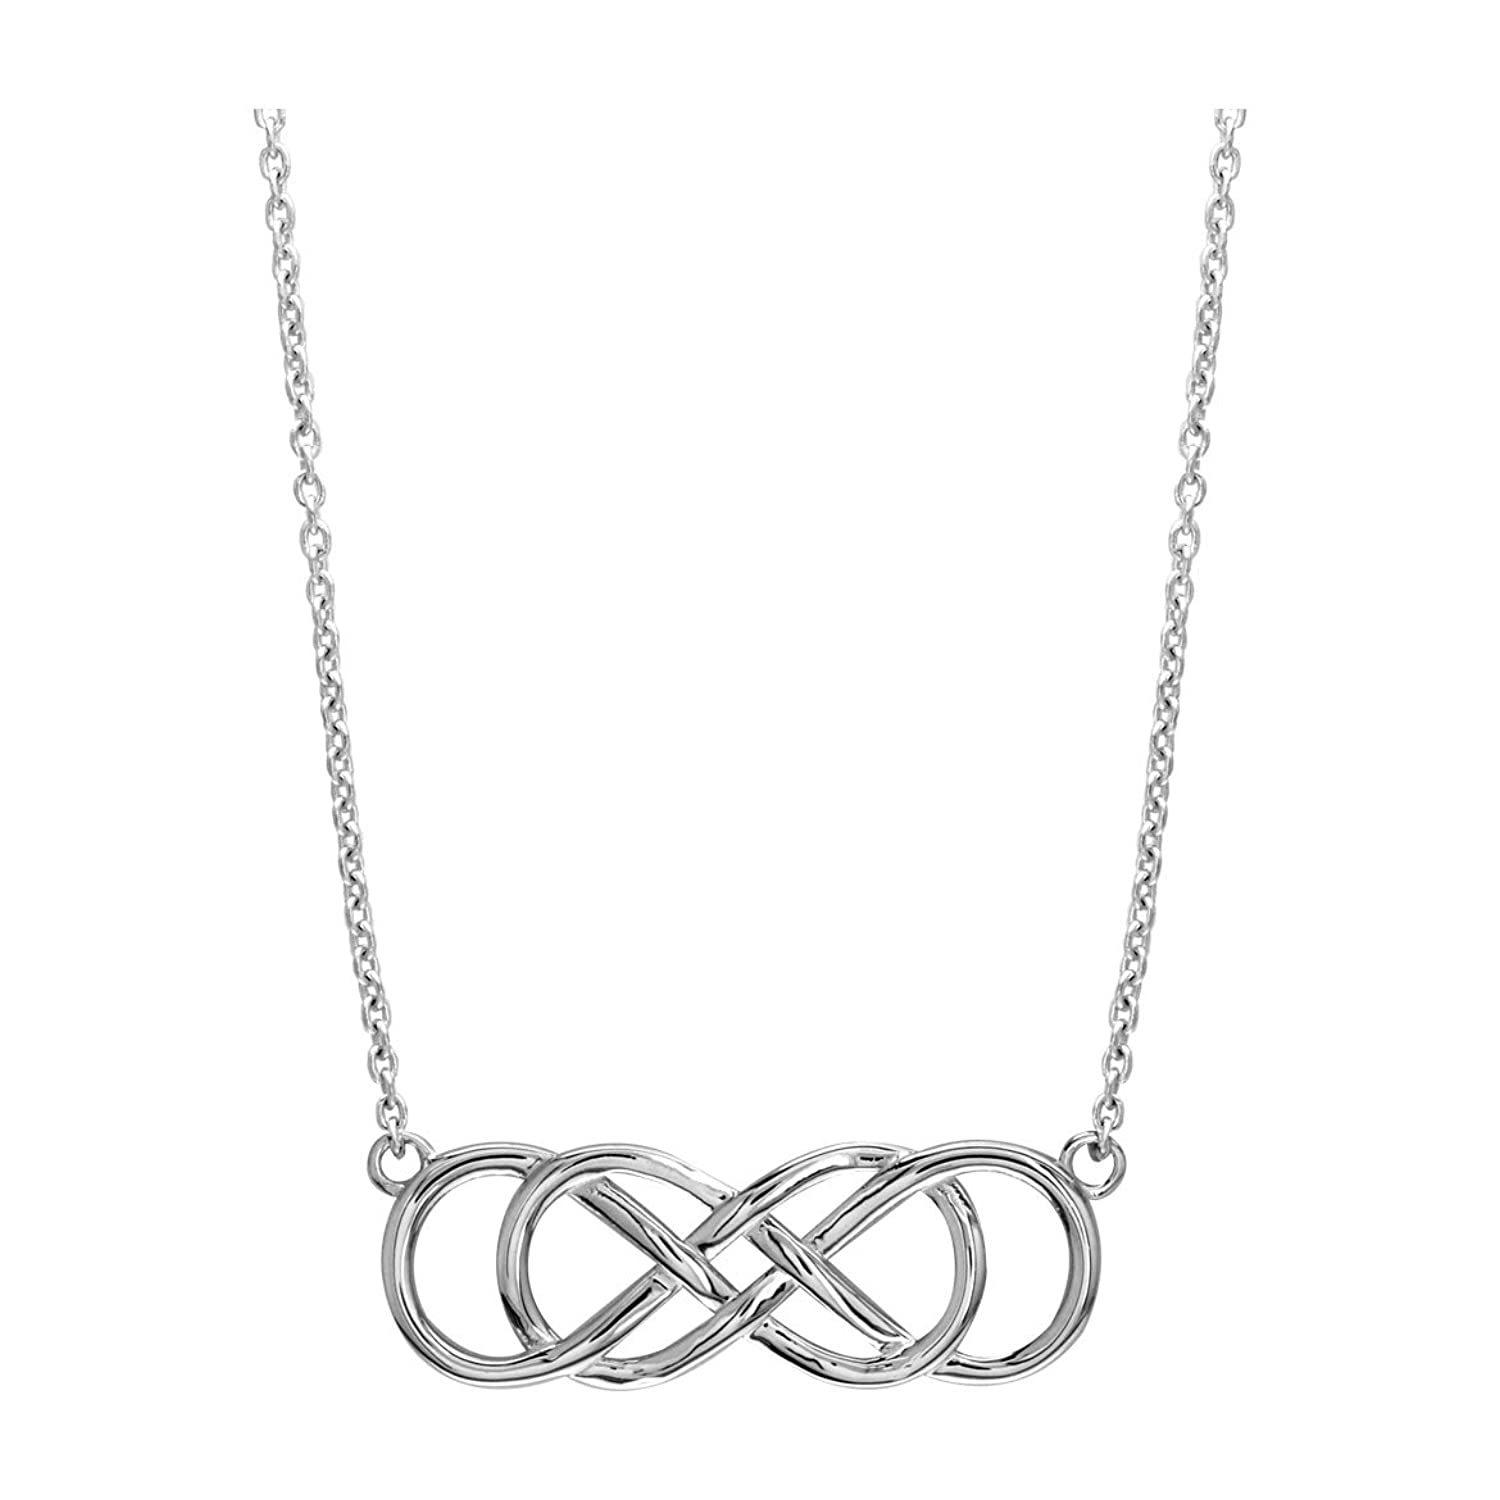 Amazon extra large sideways double infinity symbol charm and amazon extra large sideways double infinity symbol charm and chain in sterling silver 15 18 total length double infinty necklace jewelry biocorpaavc Gallery